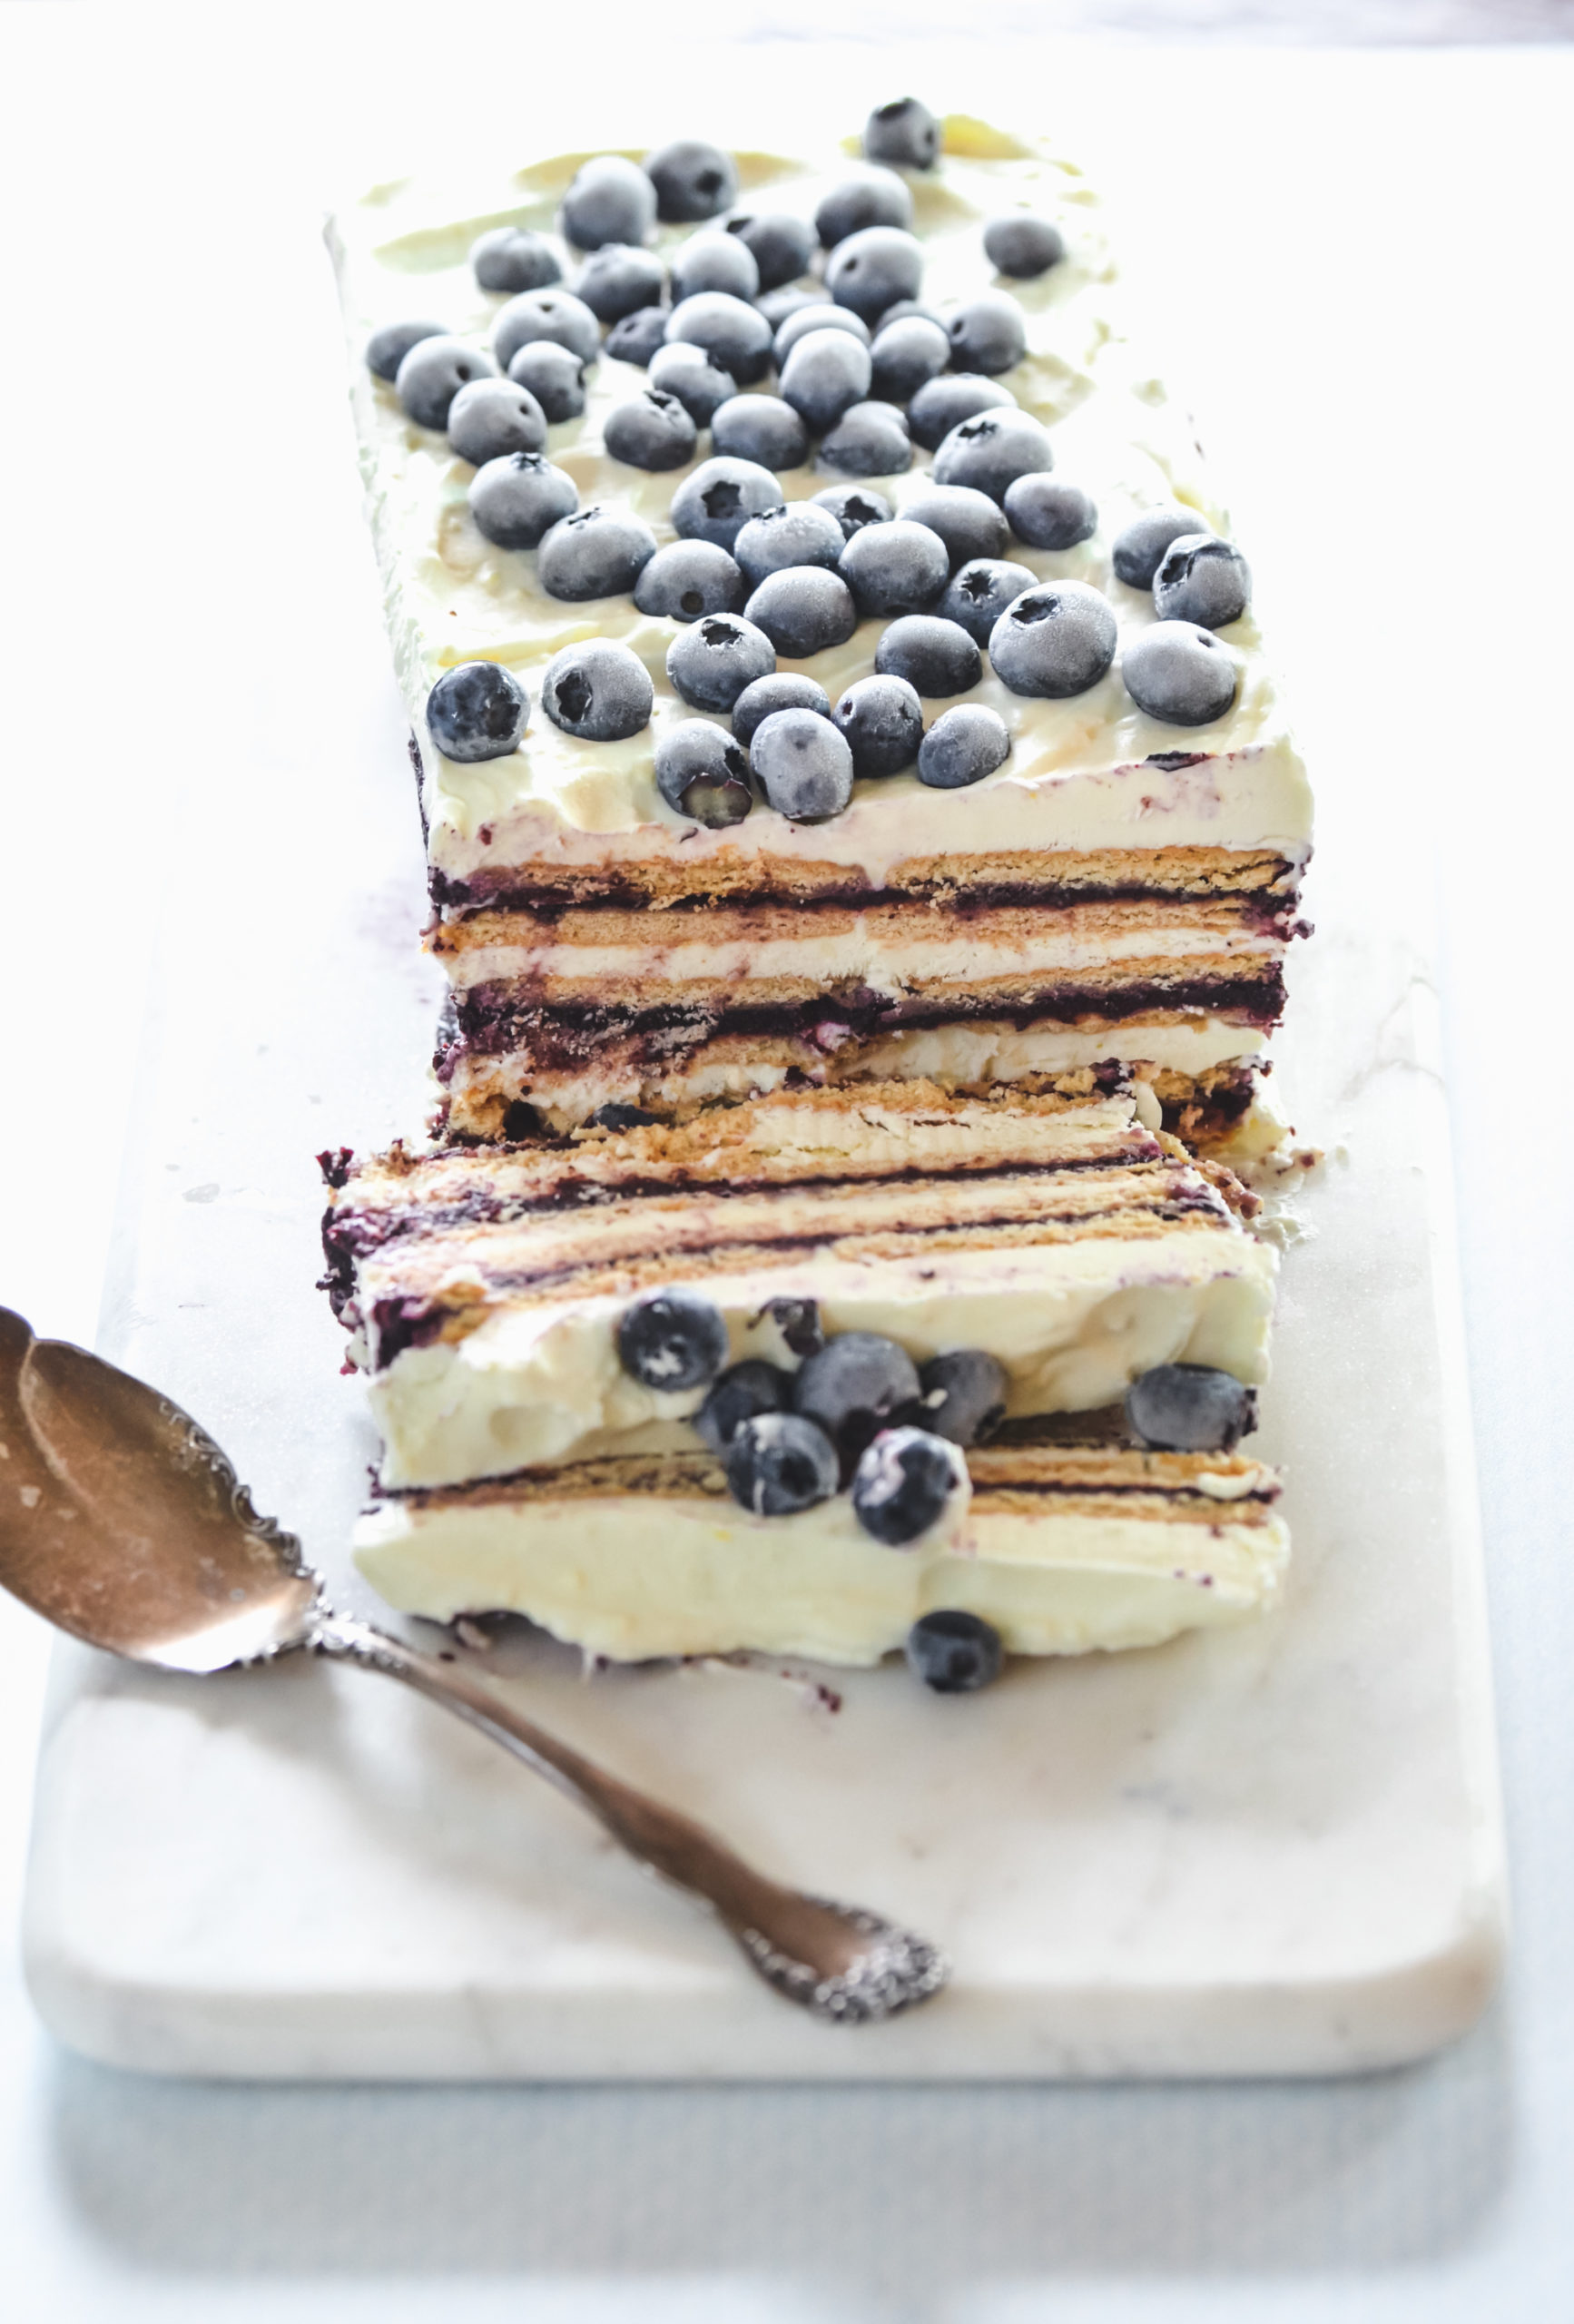 Blueberry Butter Ice Box Cake